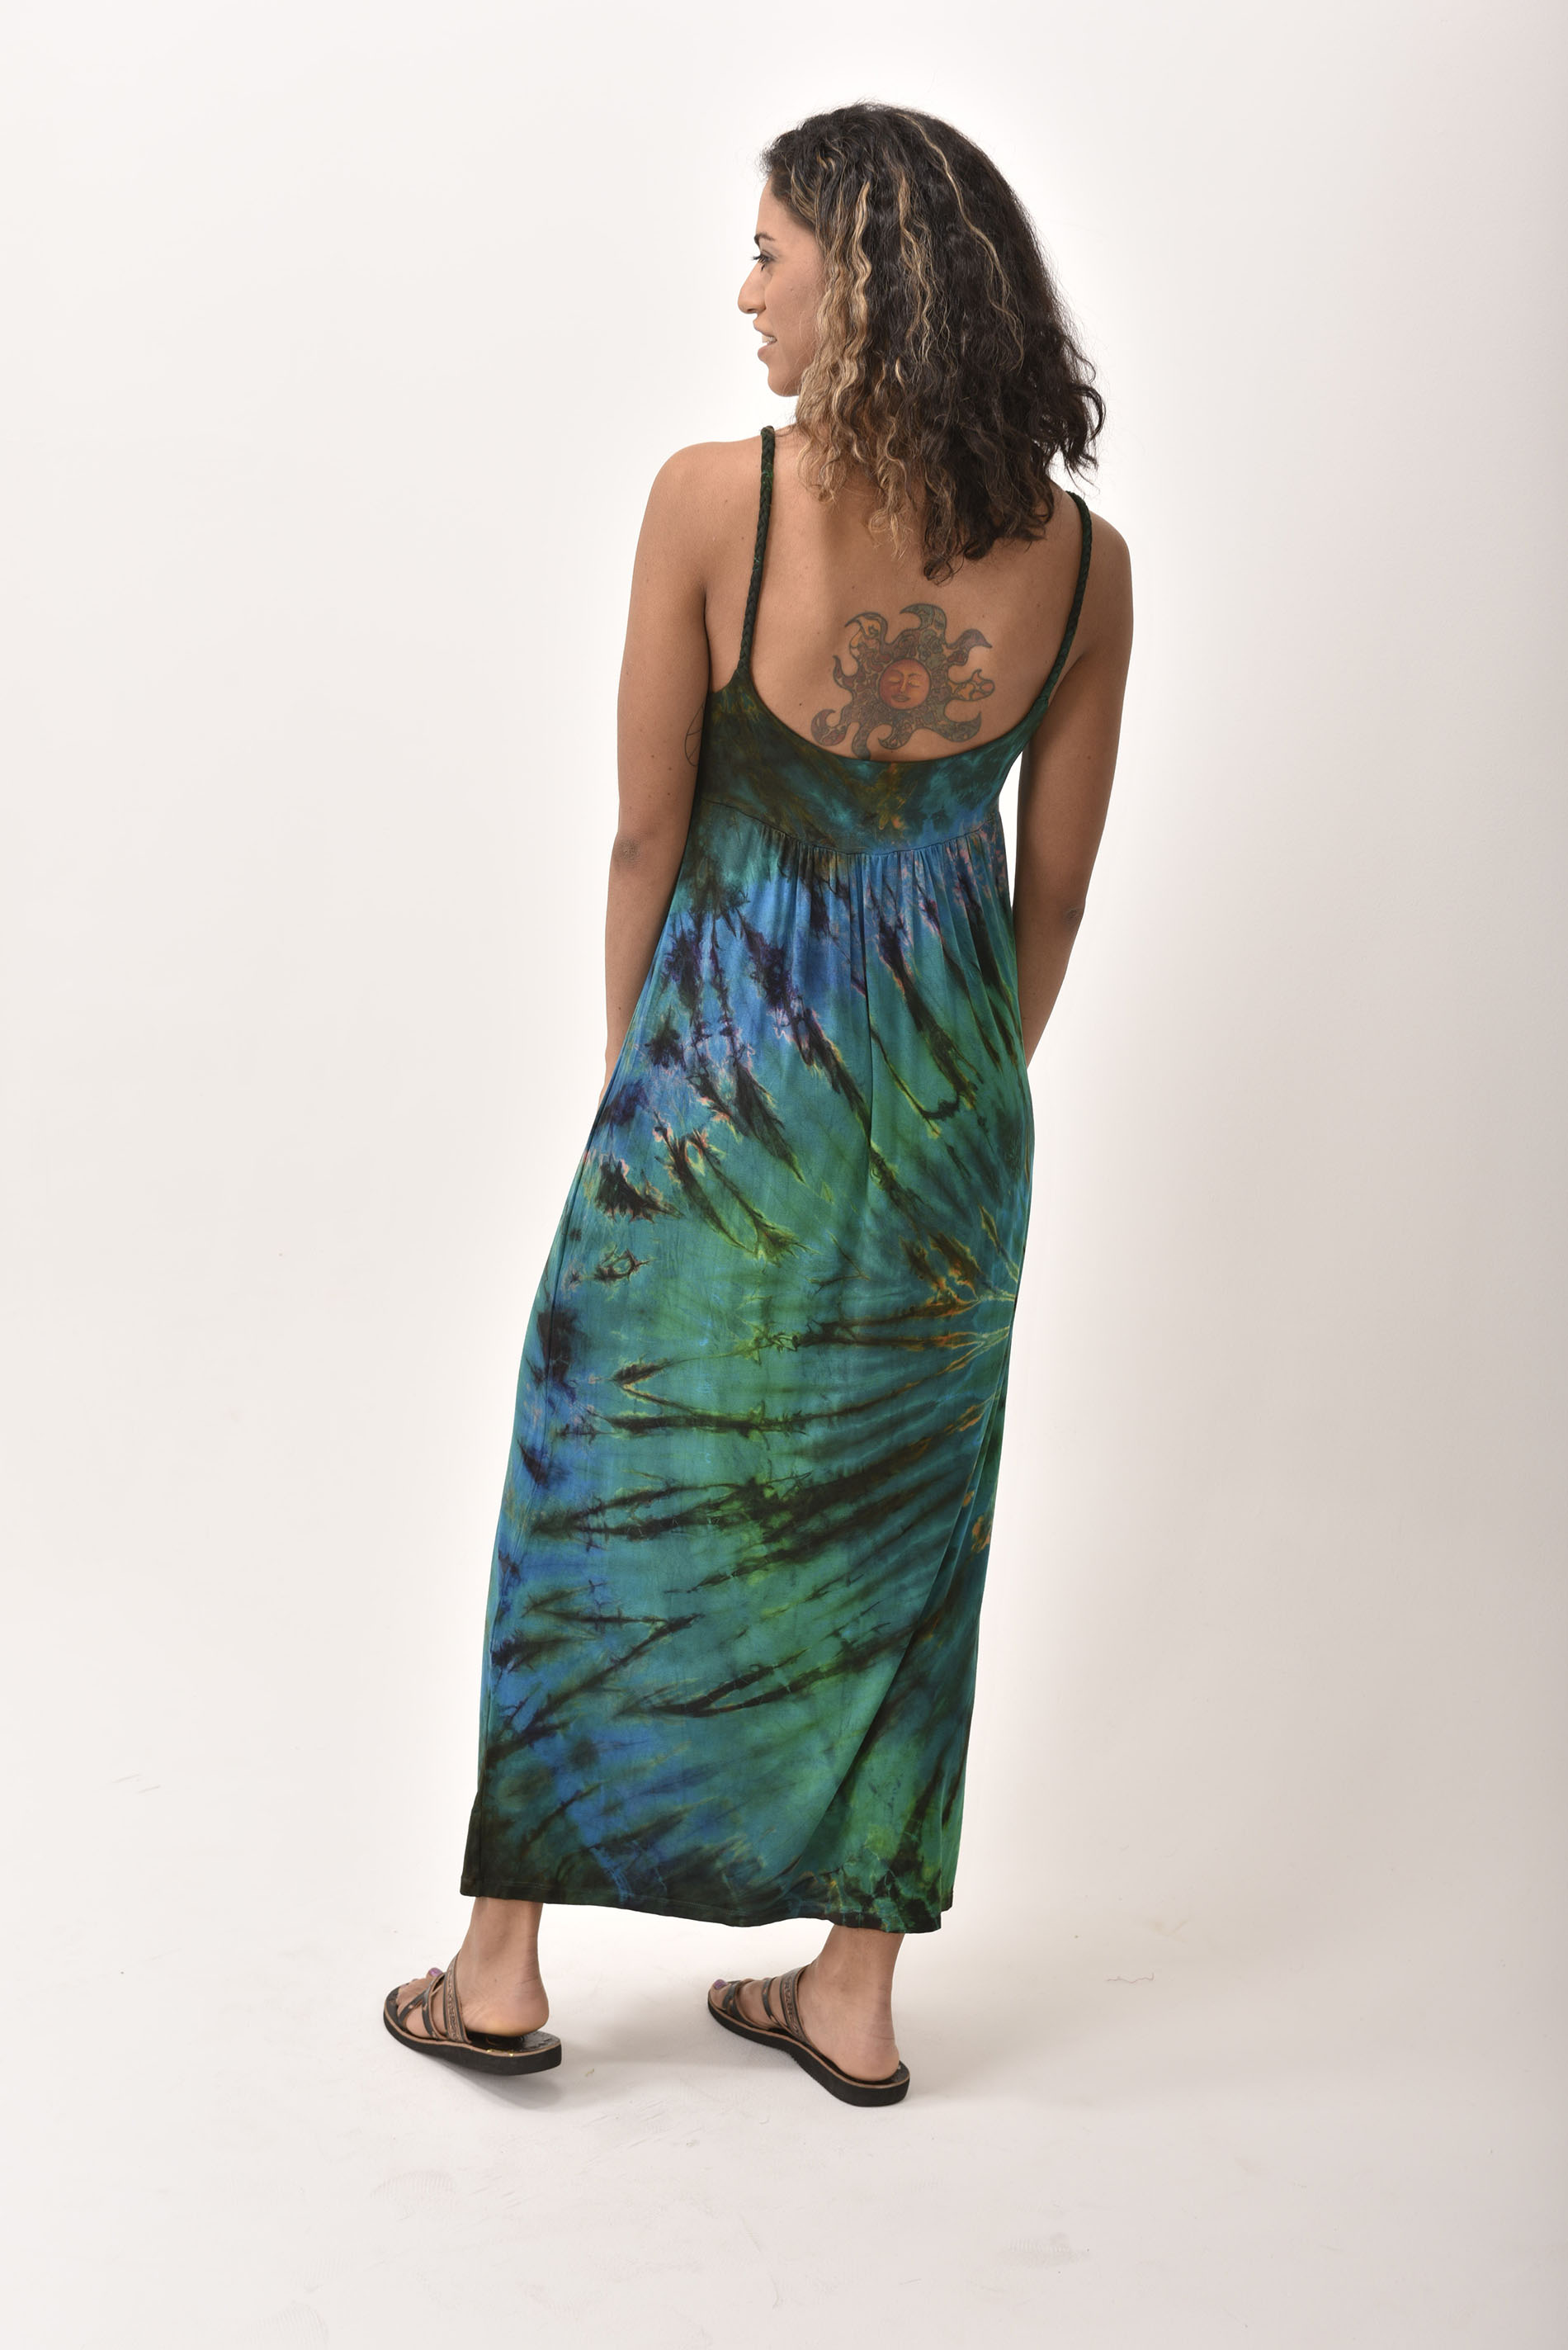 Maxi Dress, Hand Painted Tie Dye, Teal Multi